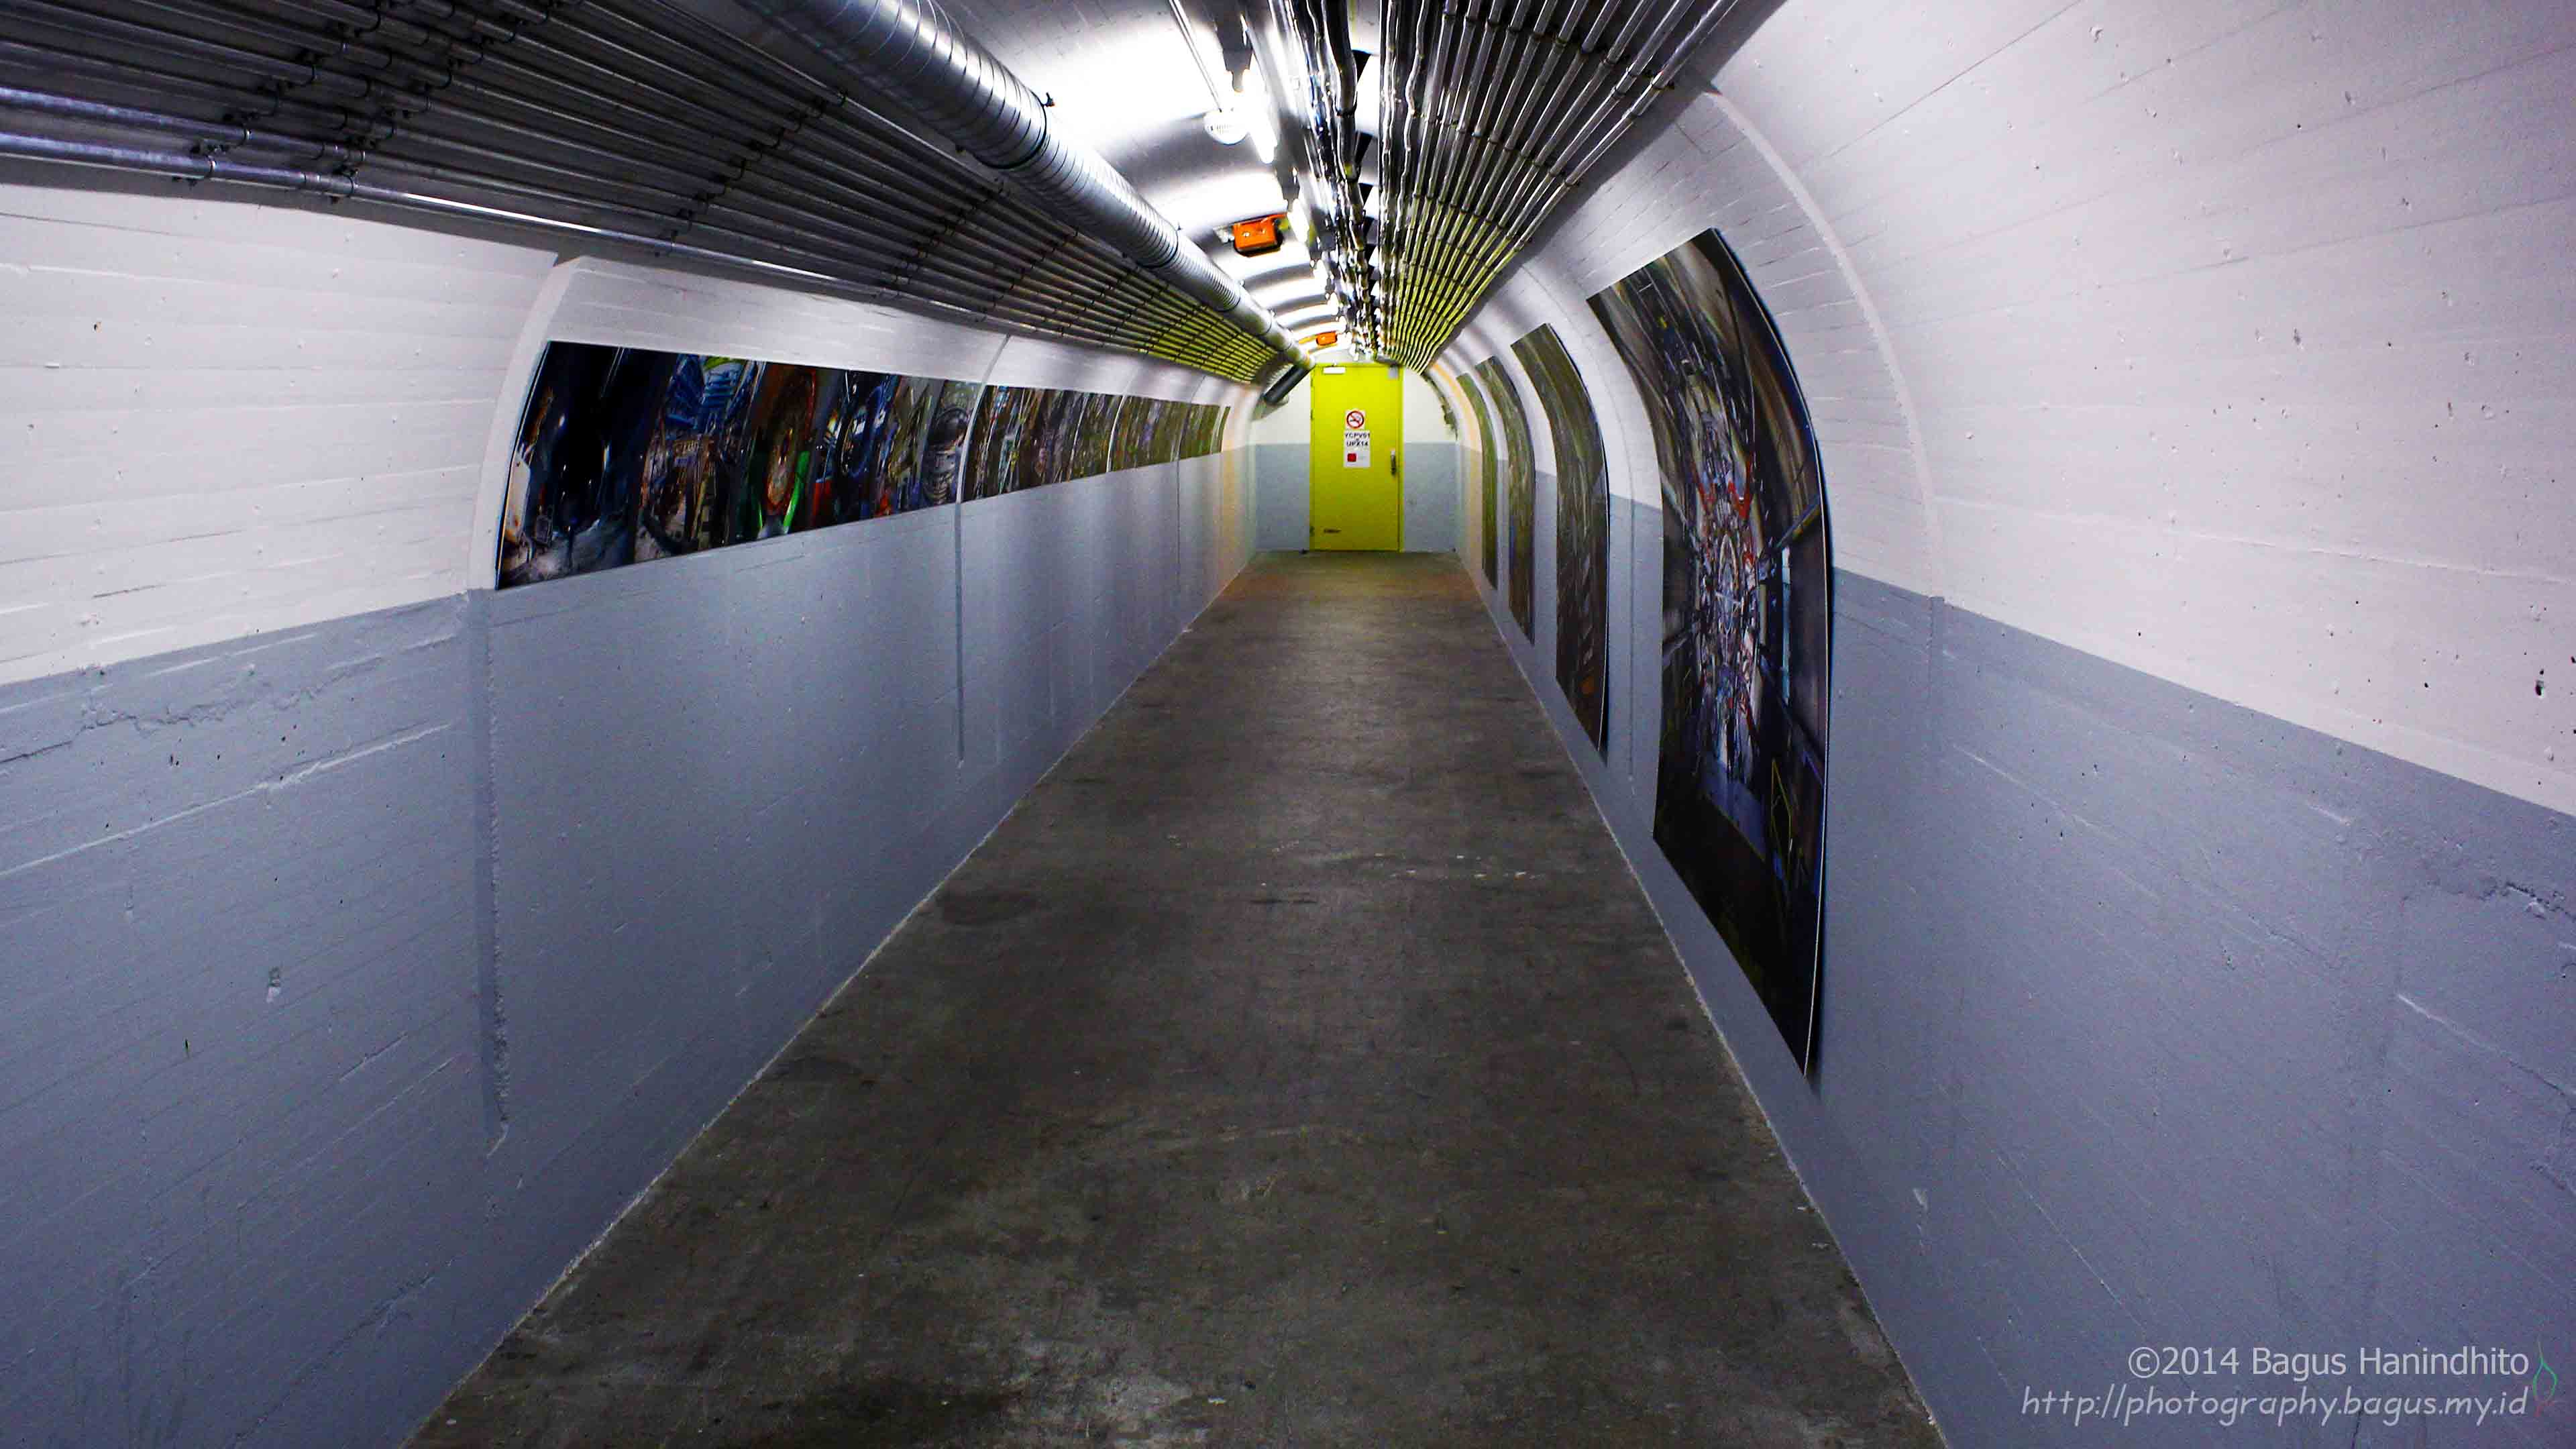 A tunnel to a particle detector and its Large Hadron Collider (LHC) at CERN.